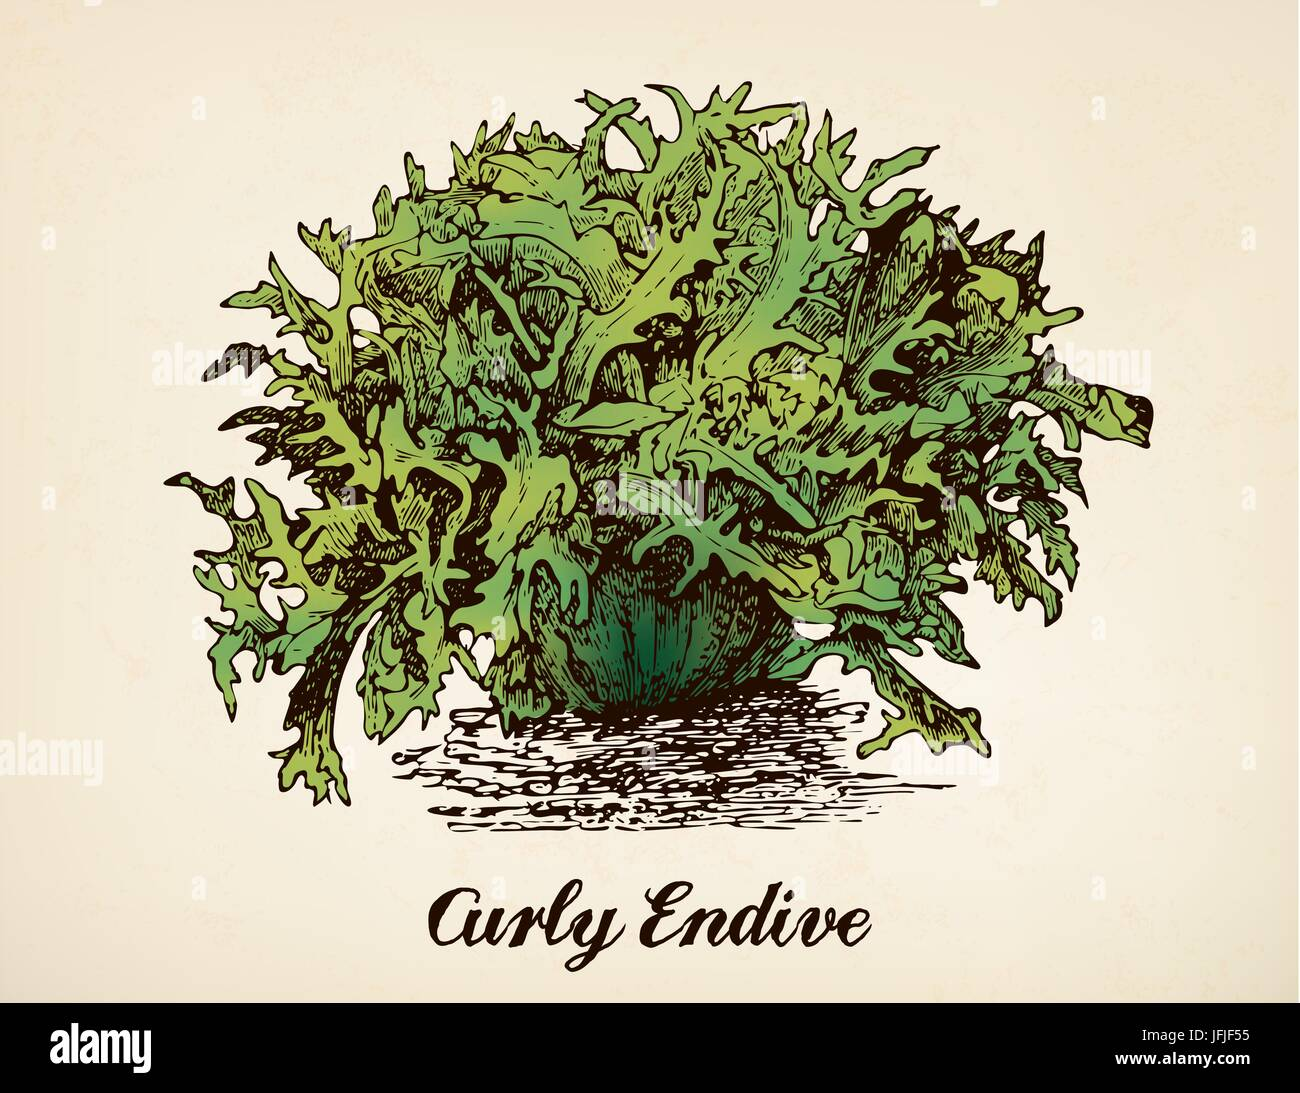 Curly Endive vector illustration after vintage etching from Brockhaus' Konversations-Lexikon, 14th edition, - Stock Image